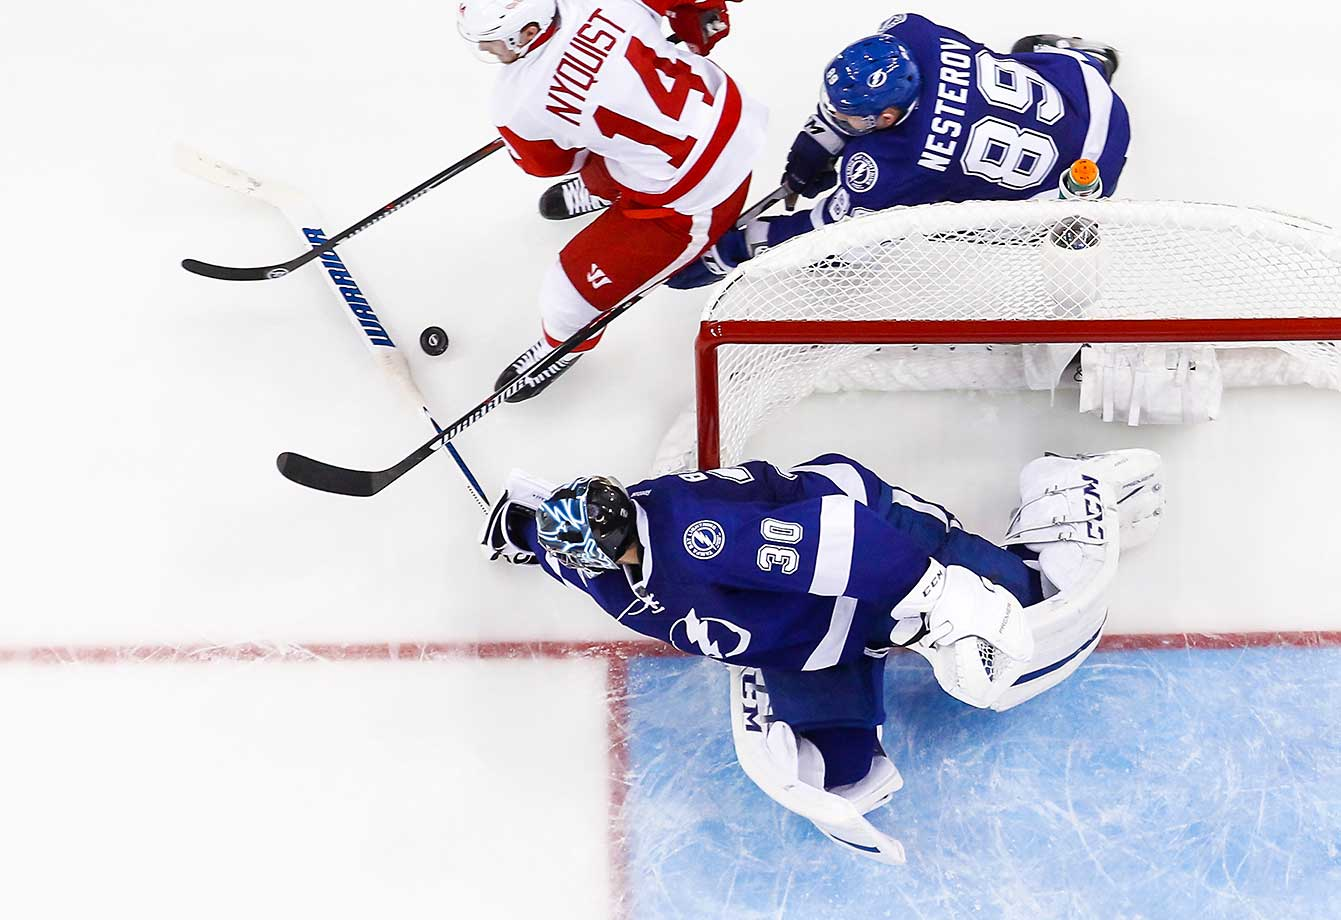 Goalie Ben Bishop of the Tampa Bay Lightning knocks the puck away from Gustav Nyquist of the Detroit Red Wings as Nikita Nesterov chases at the Amalie Arena in Tampa, Fla.